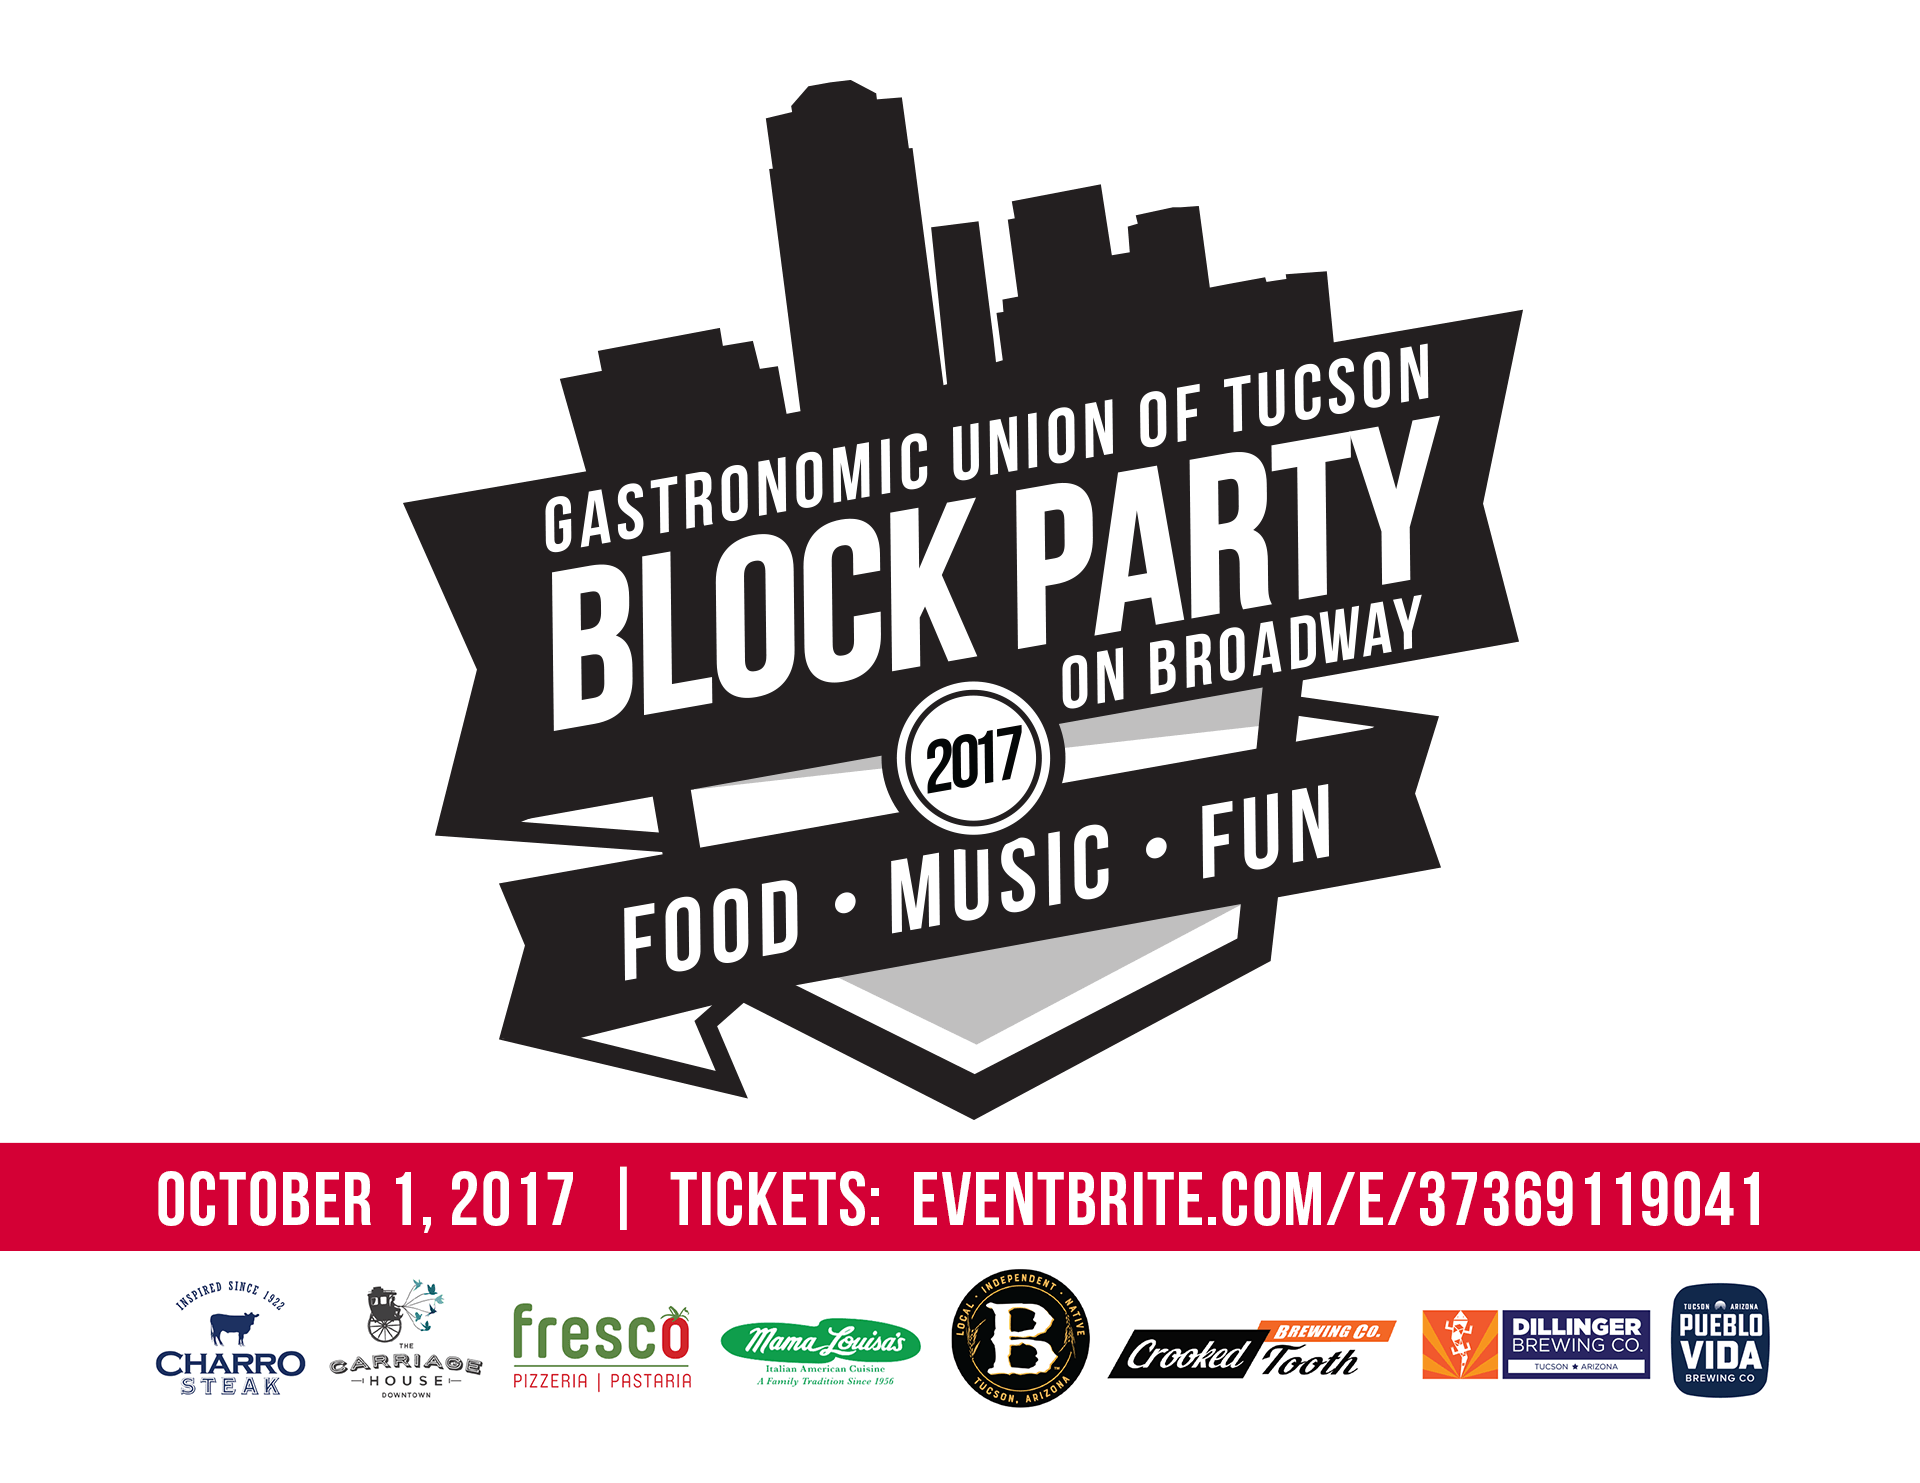 Block Party on Broadway